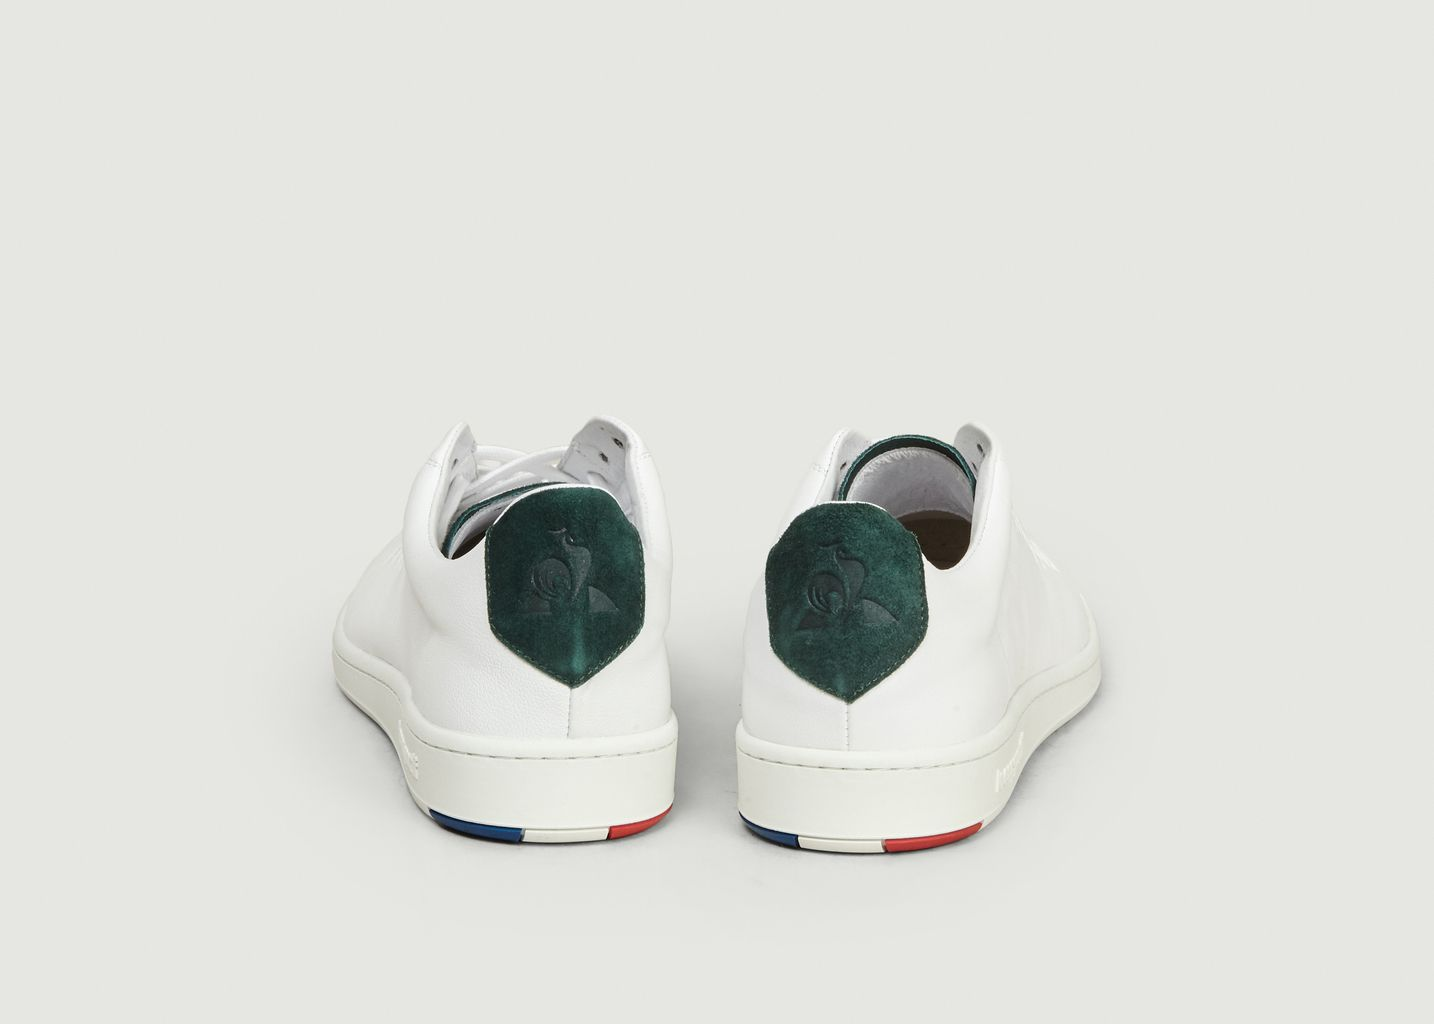 Sneakers Exclusive Le Coq Sportif Blazon x L'Exception Made in France - L'Exception Paris